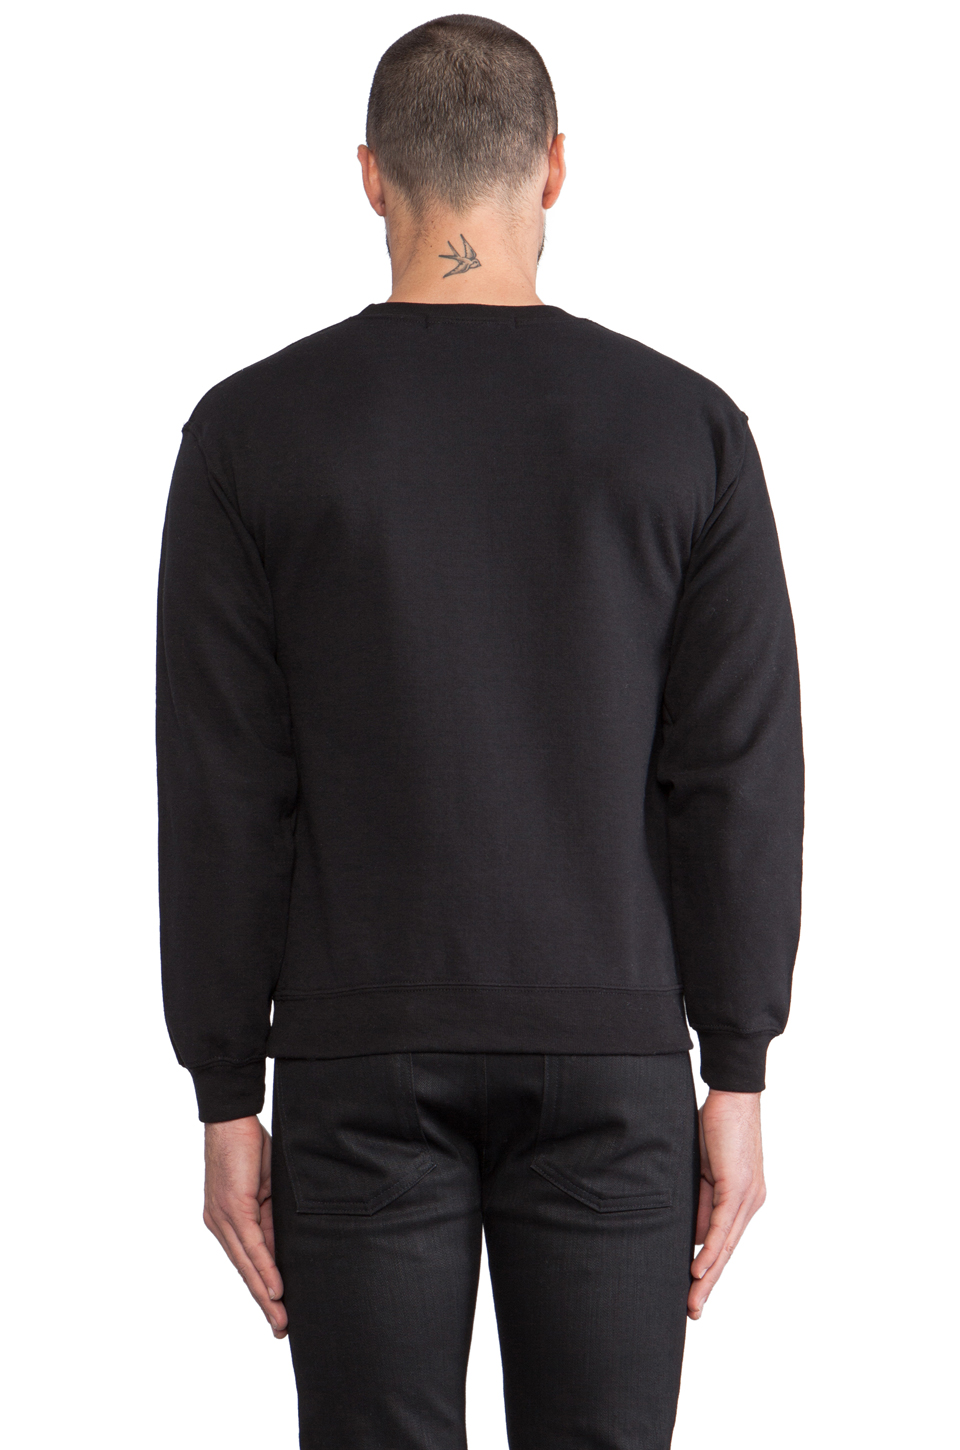 Brian Lichtenberg Homies Sweatshirt in Black/White